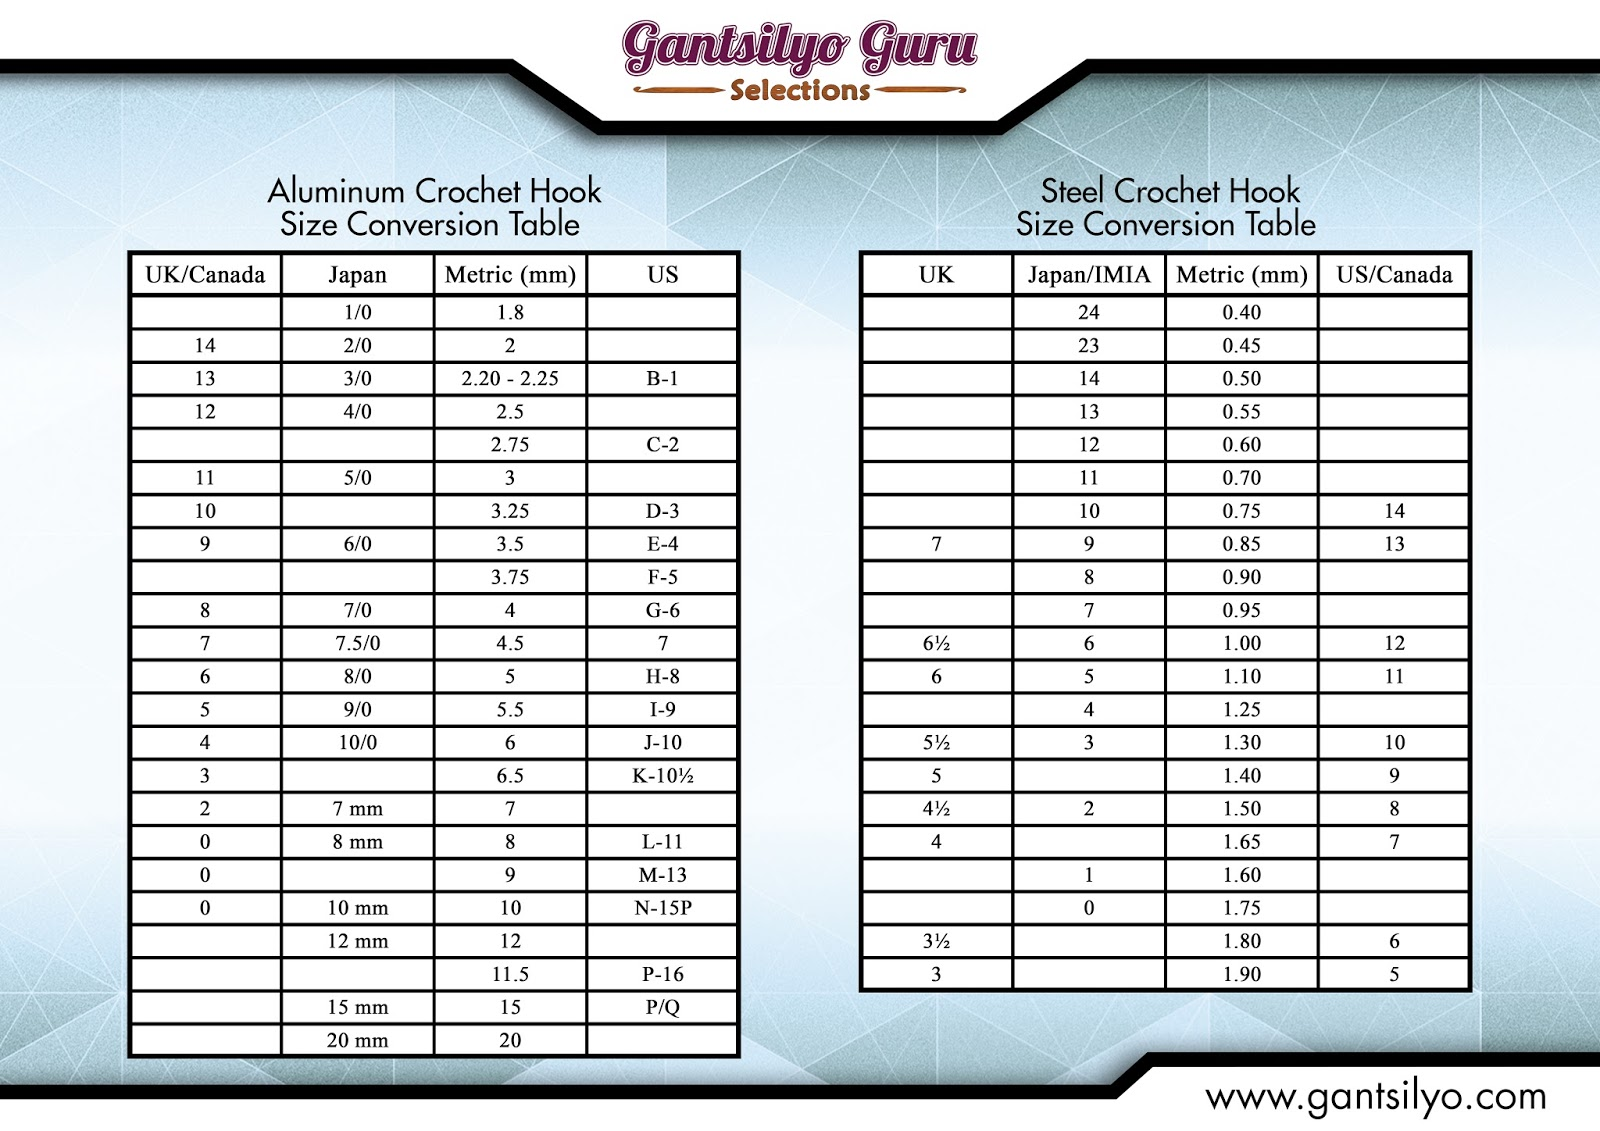 Metric Conversion Chart Length >> Gantsilyo Guru: Crochet Hook Conversion